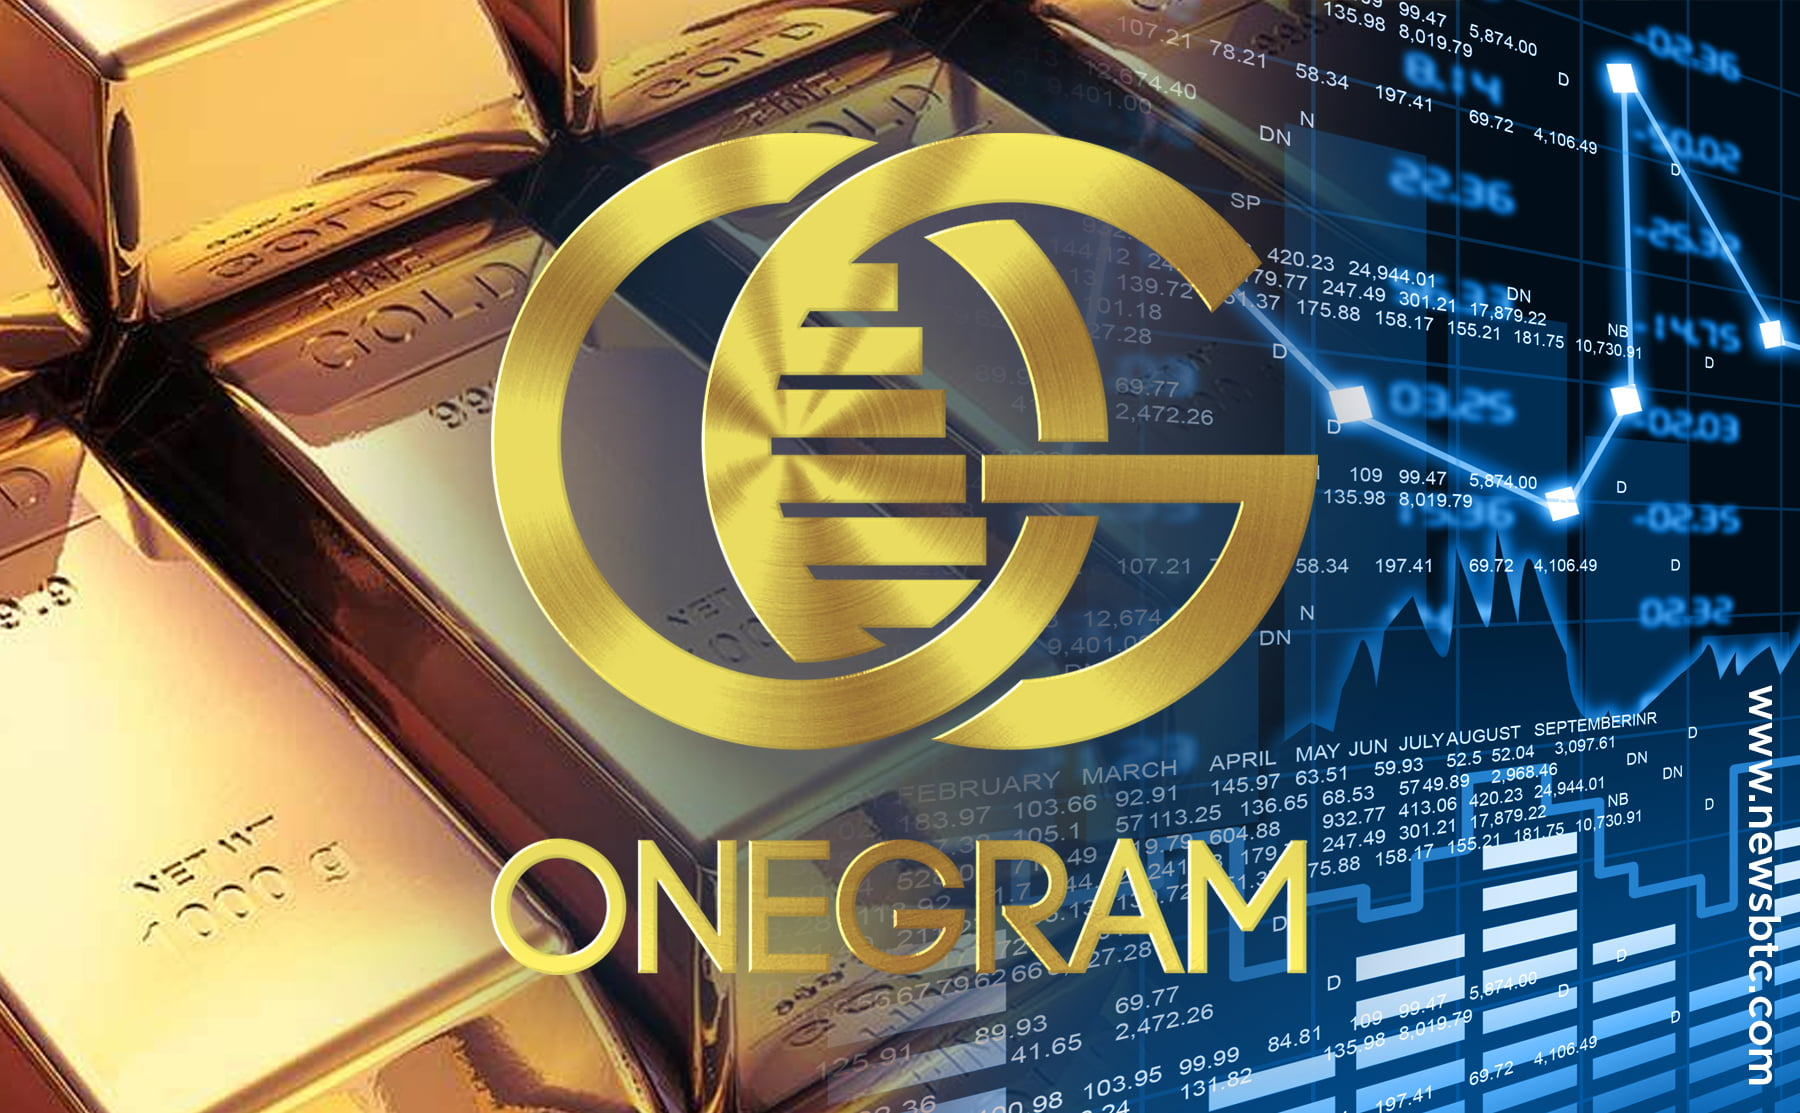 OneGram Cryptocurrency